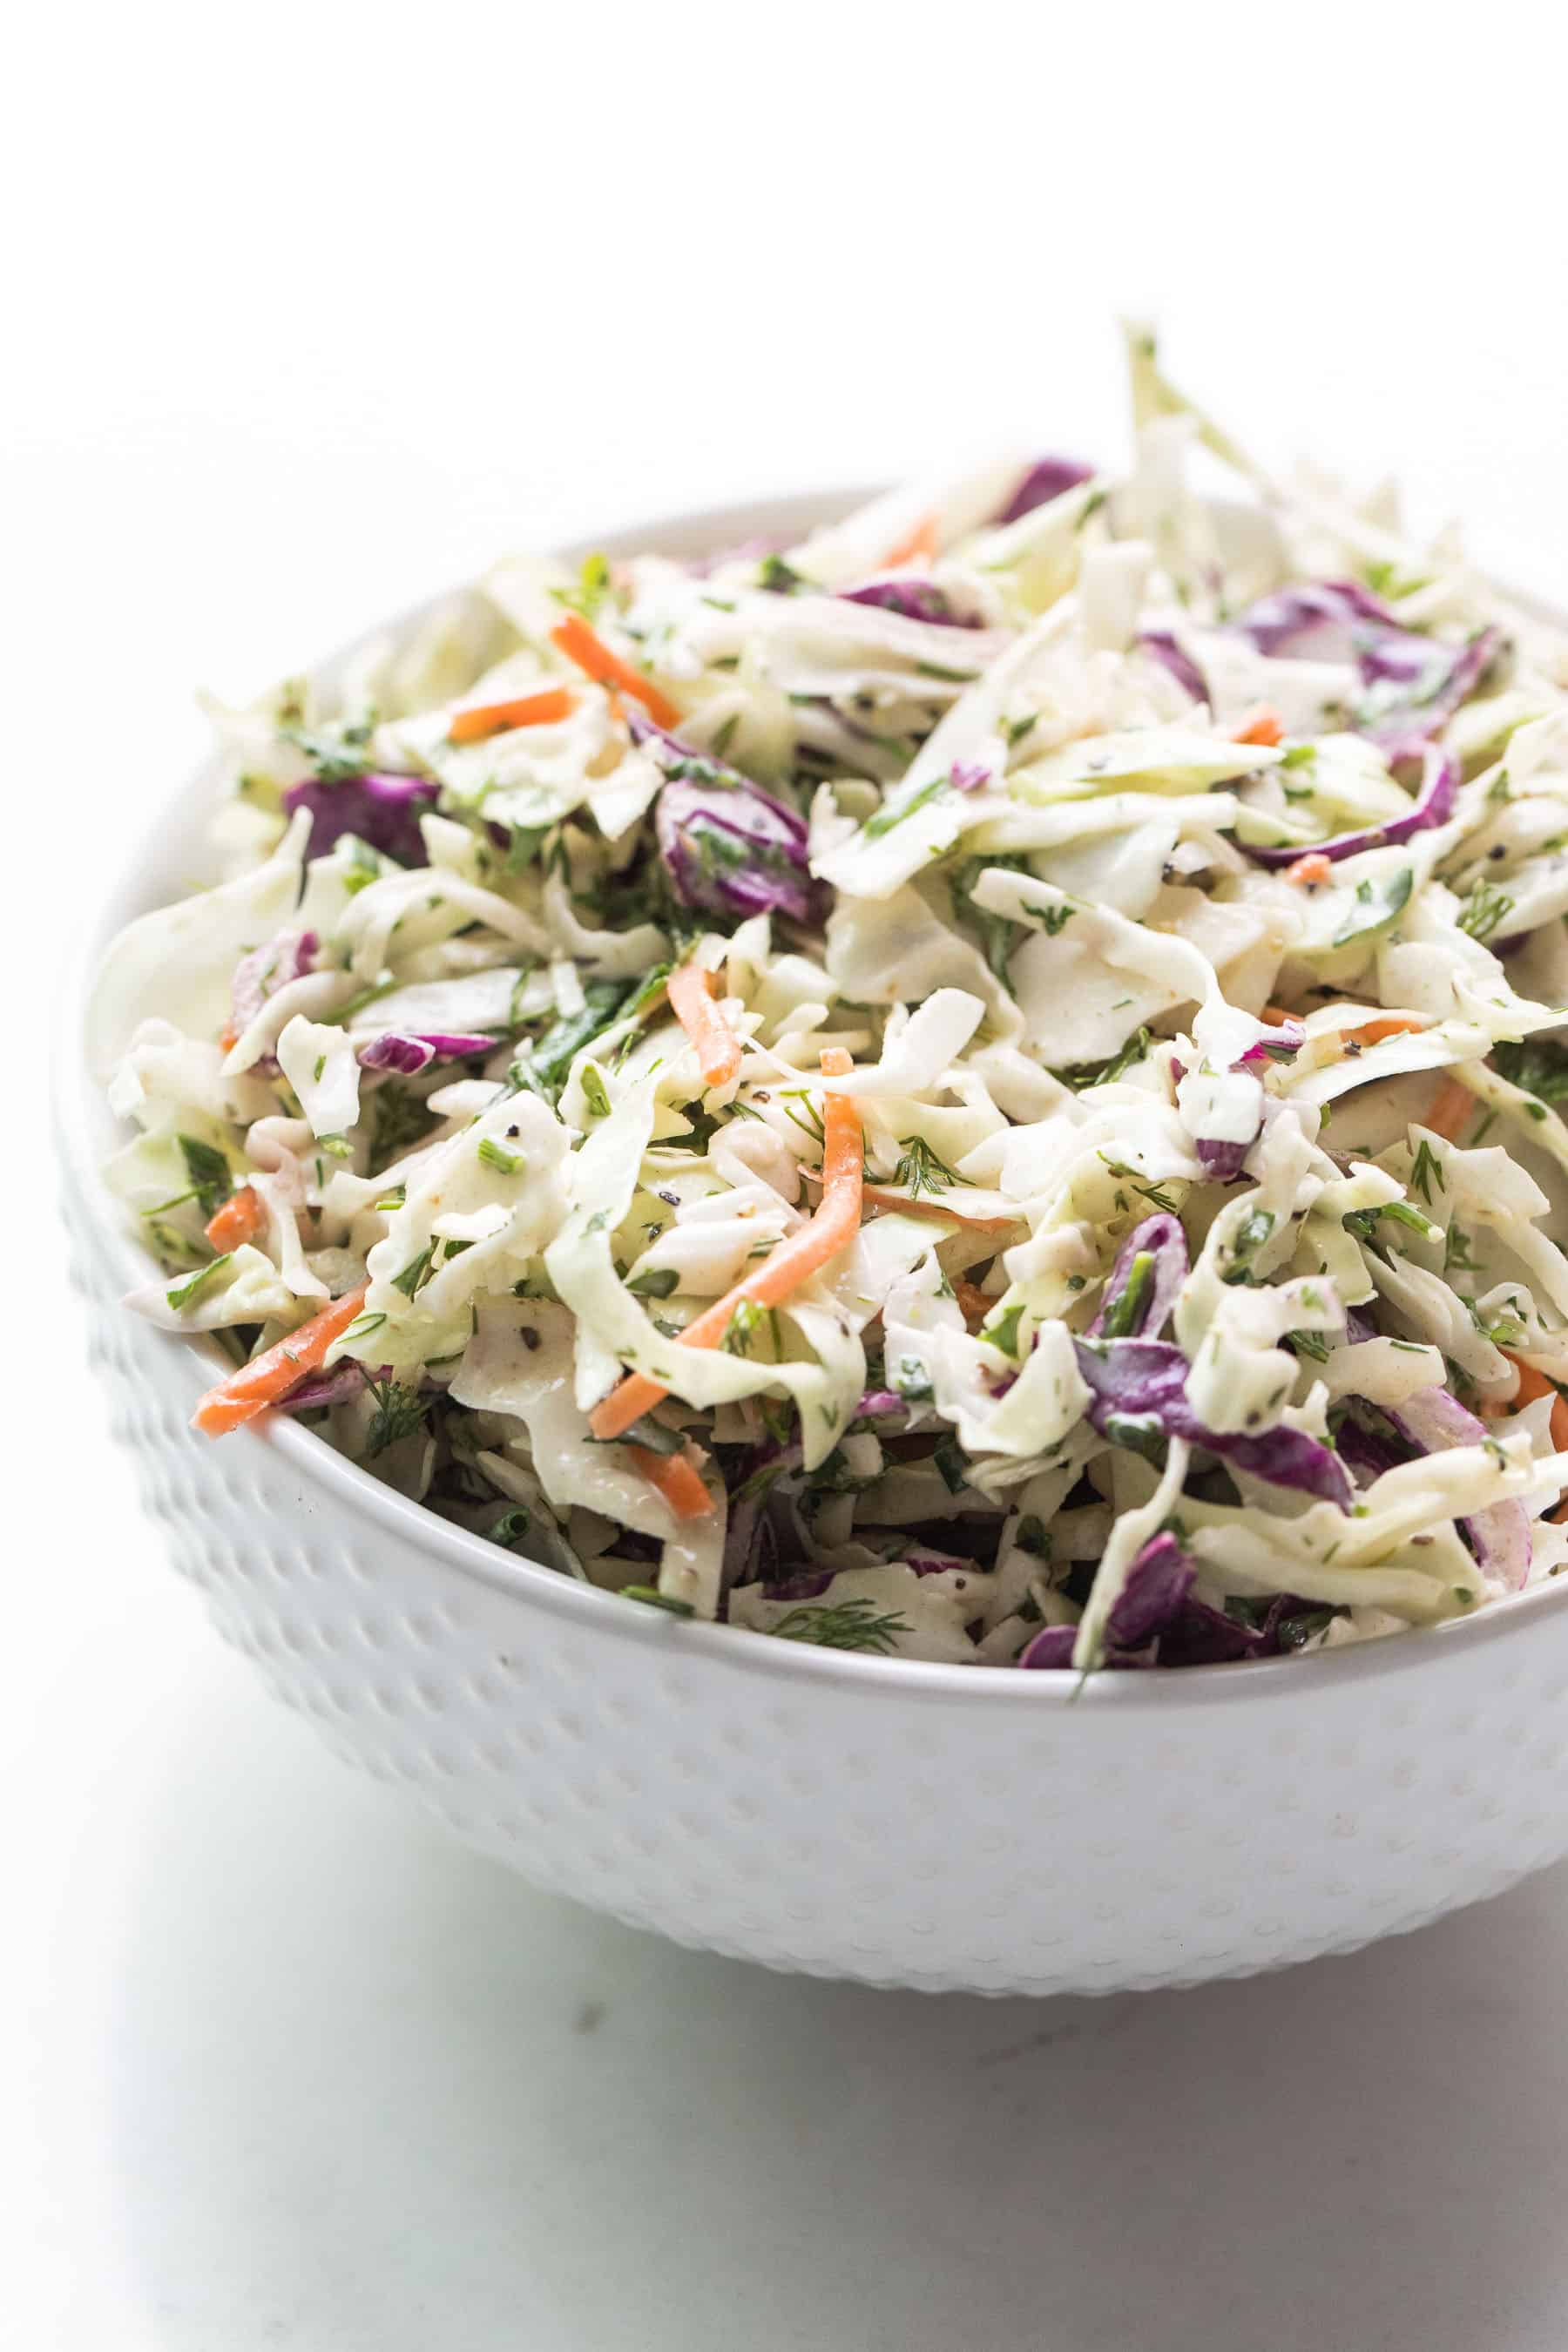 Coleslaw in a white bowl